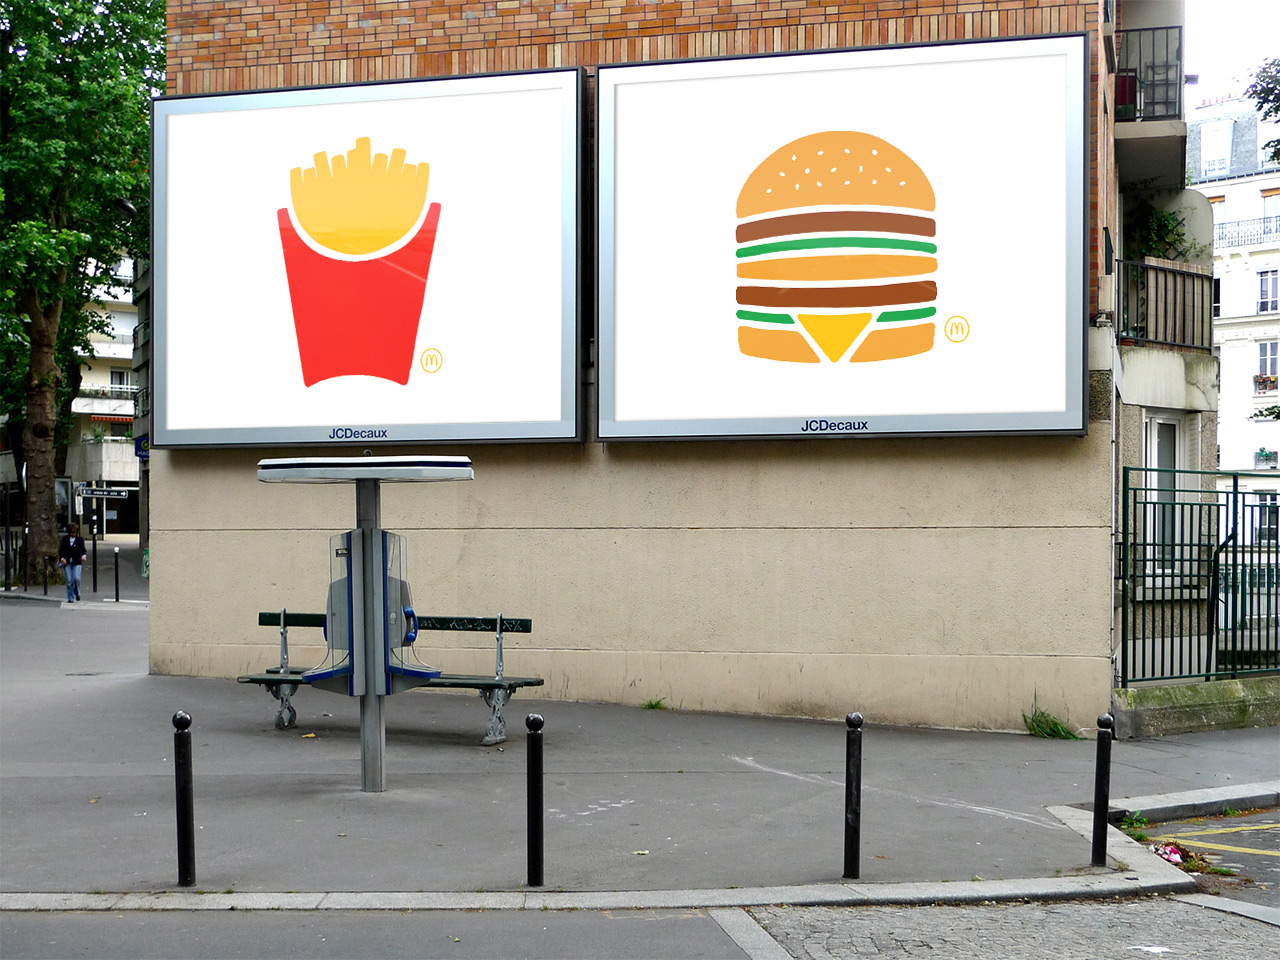 14 brilliant outdoor ads that rocked the real world in 2014 u2013 adweek